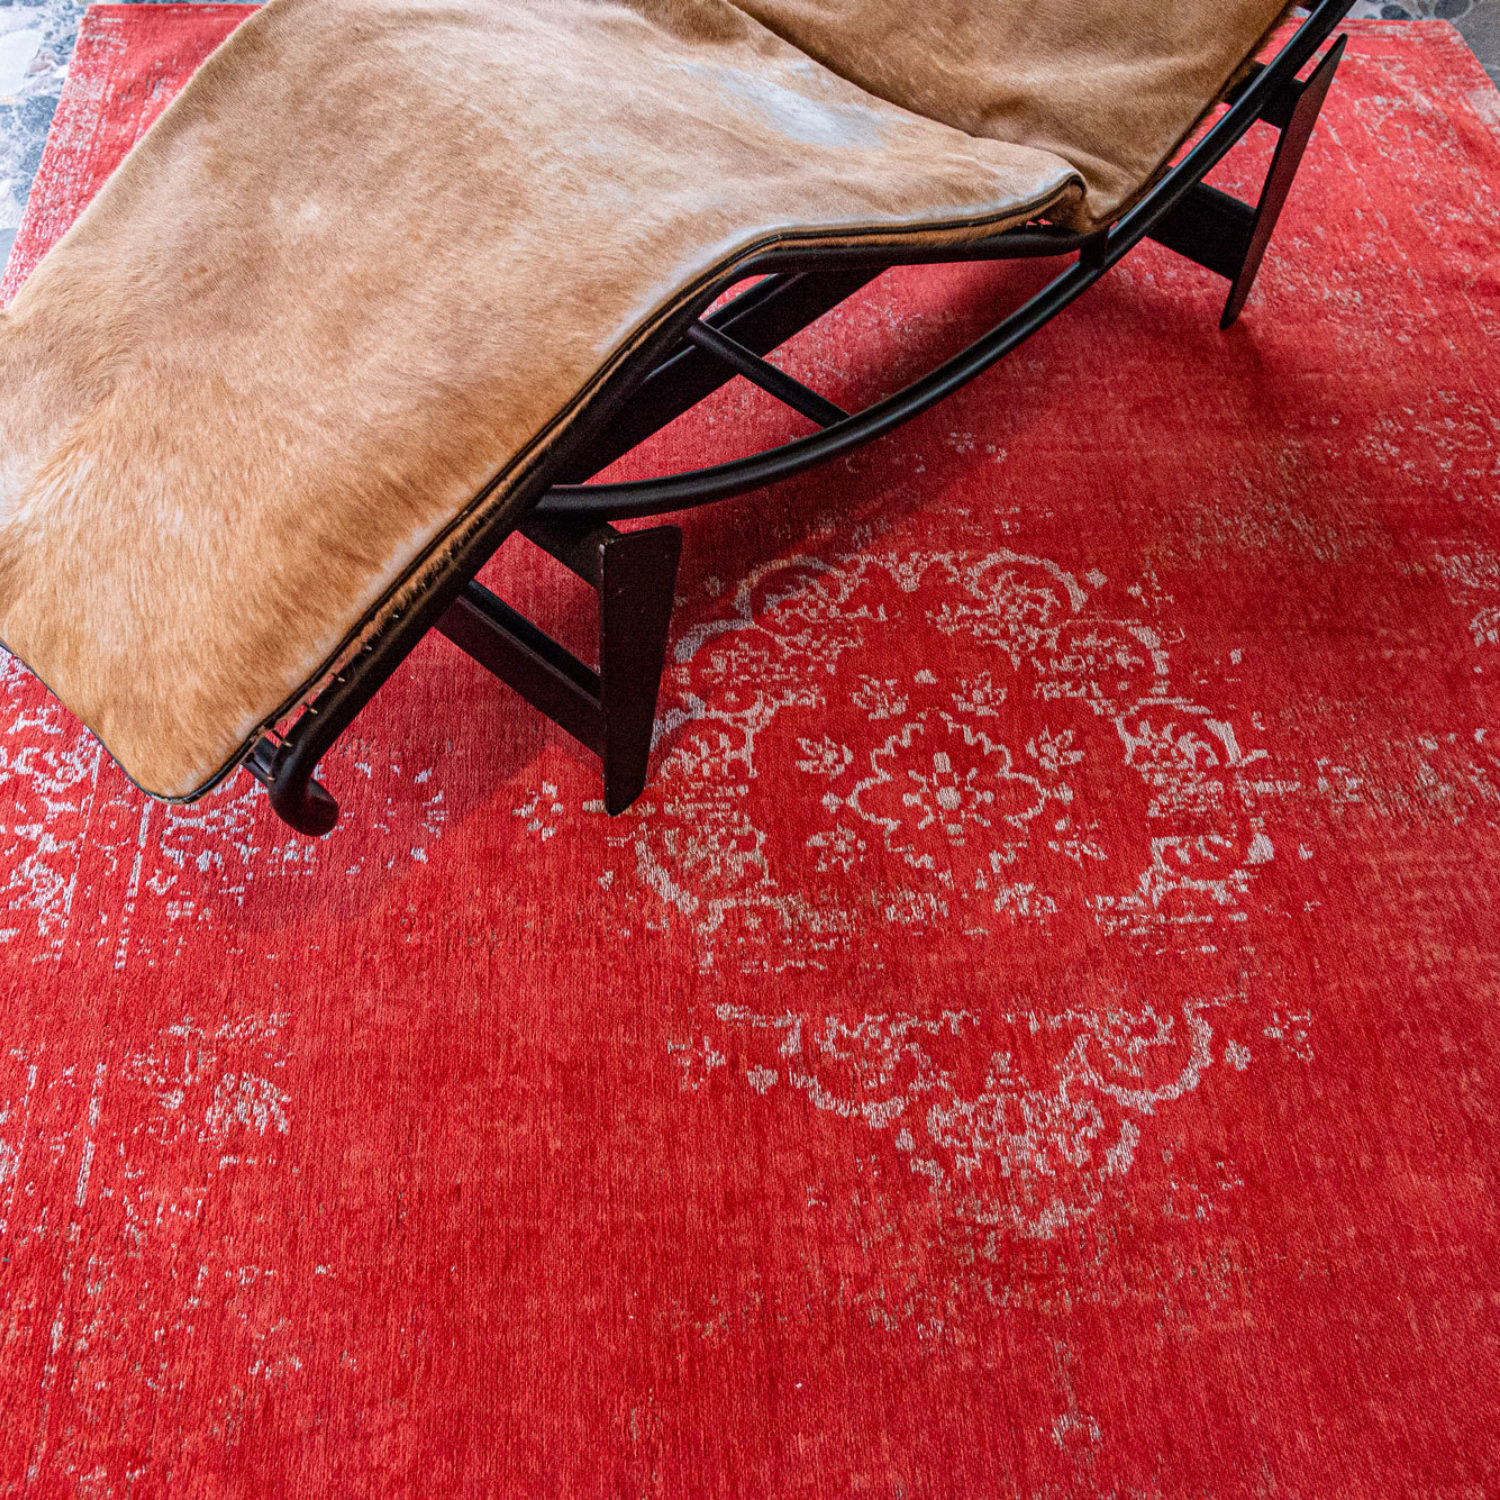 The central pattern or medallion of this rug is an ancient classic.